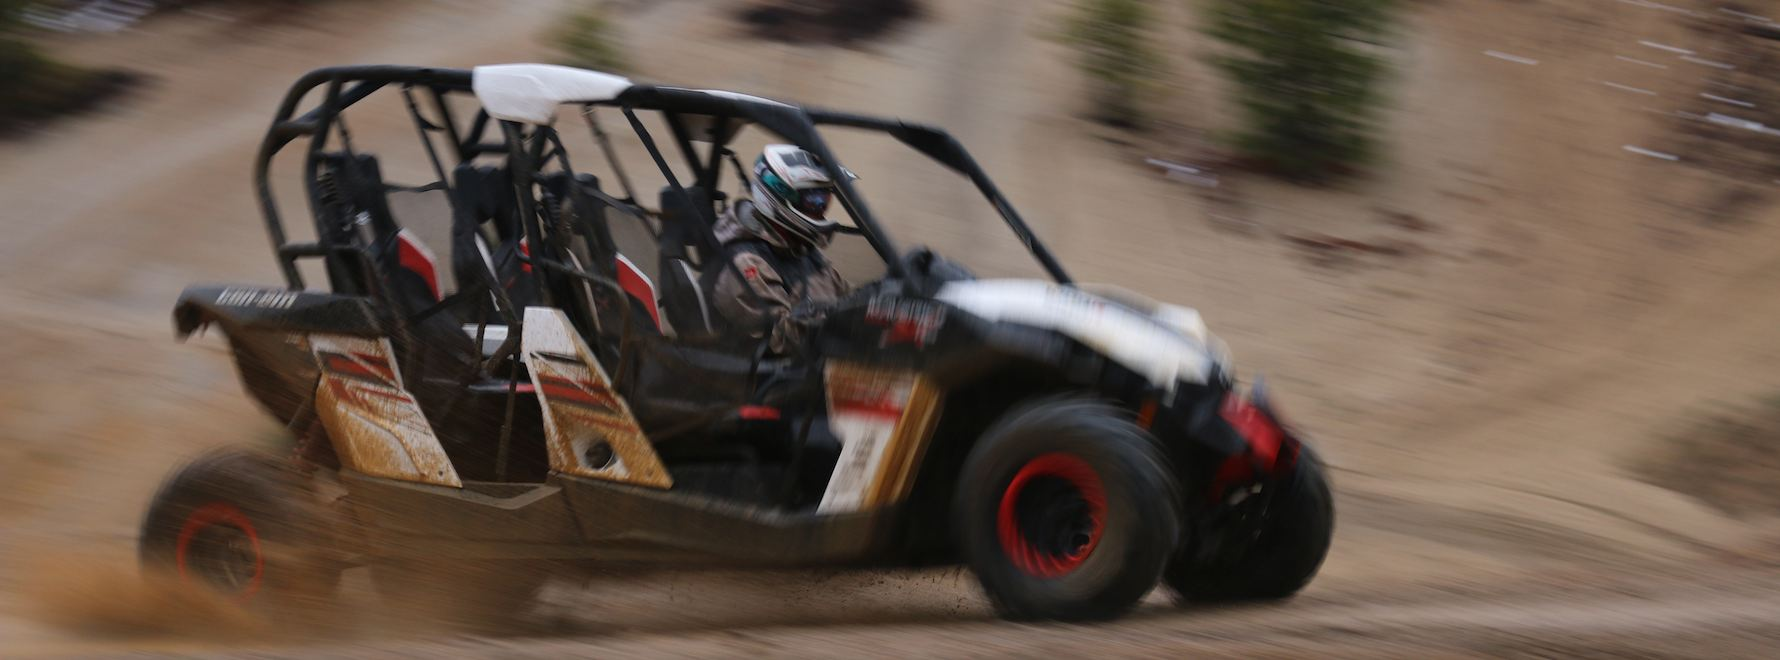 lake-tahoe-back-country-ATV-tours